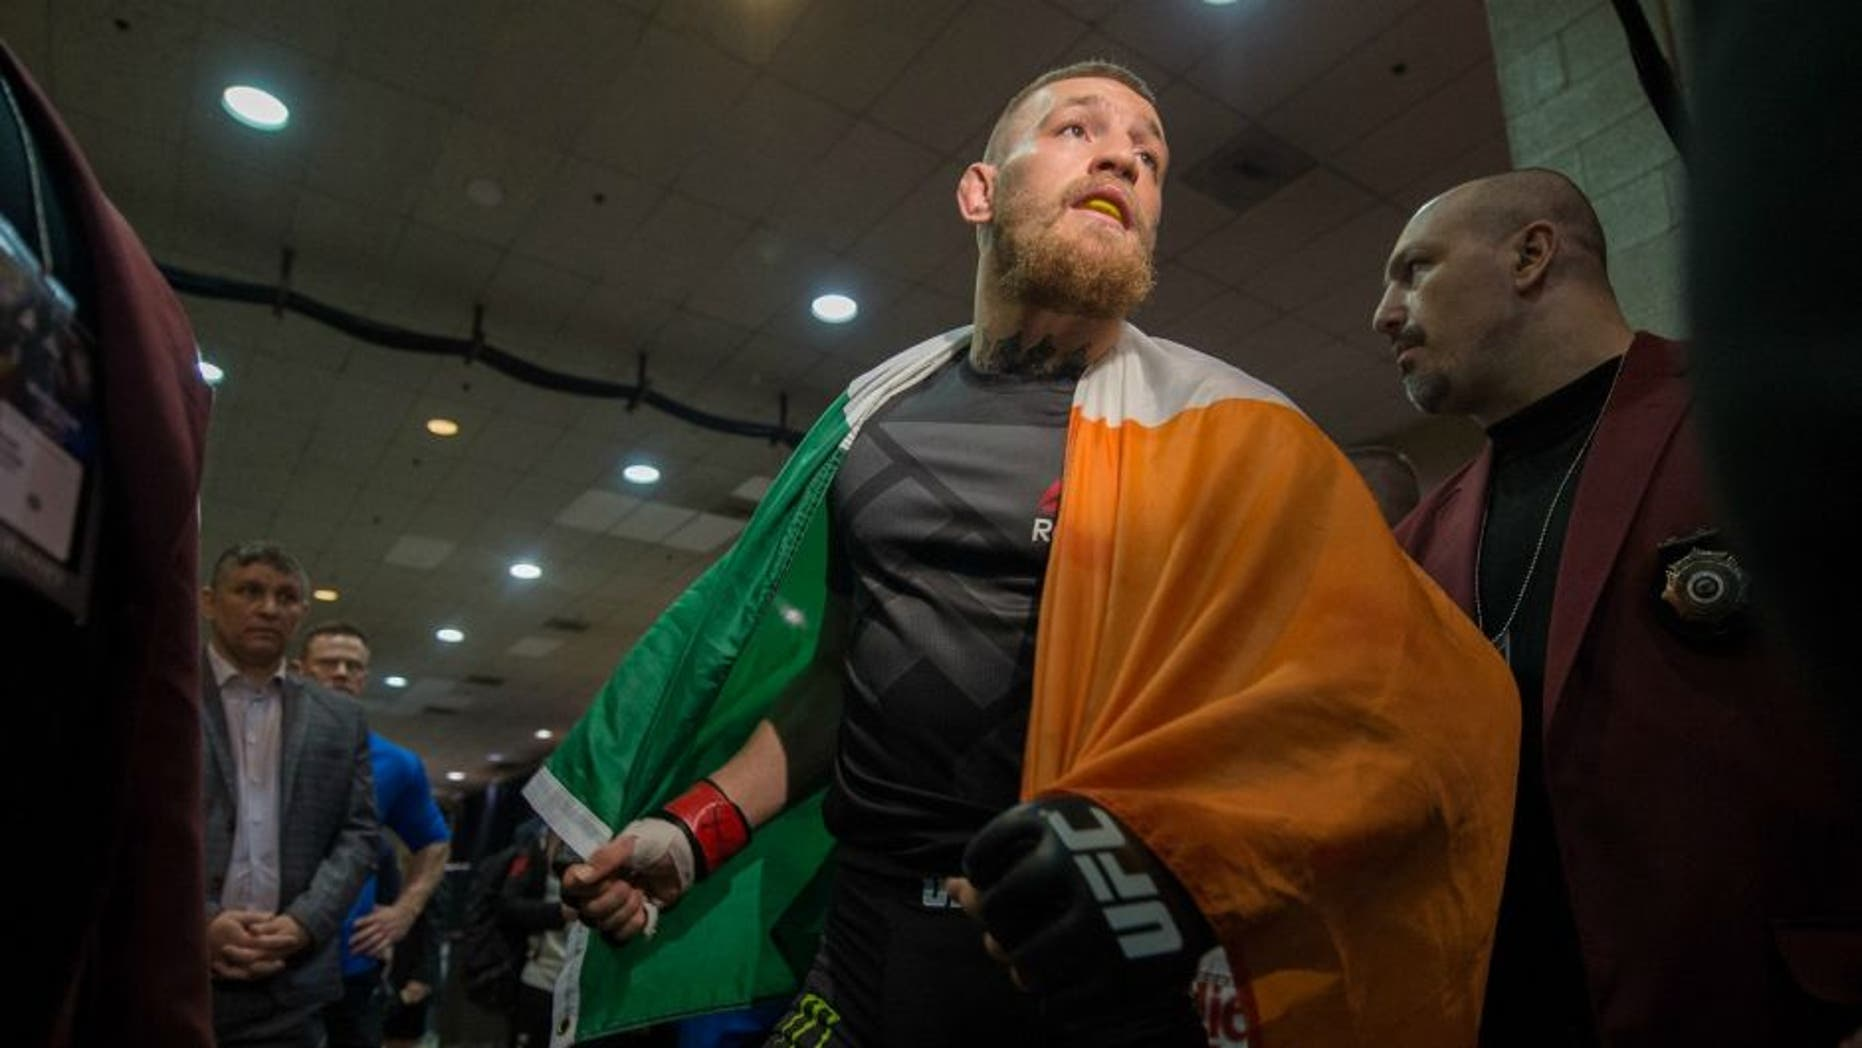 LAS VEGAS, NV - MARCH 5: Conor McGregor warms up backstage during the UFC 196 in the MGM Grand Garden Arena on March 5, 2016 in Las Vegas, Nevada. (Photo by Brandon Magnus/Zuffa LLC/Zuffa LLC via Getty Images)